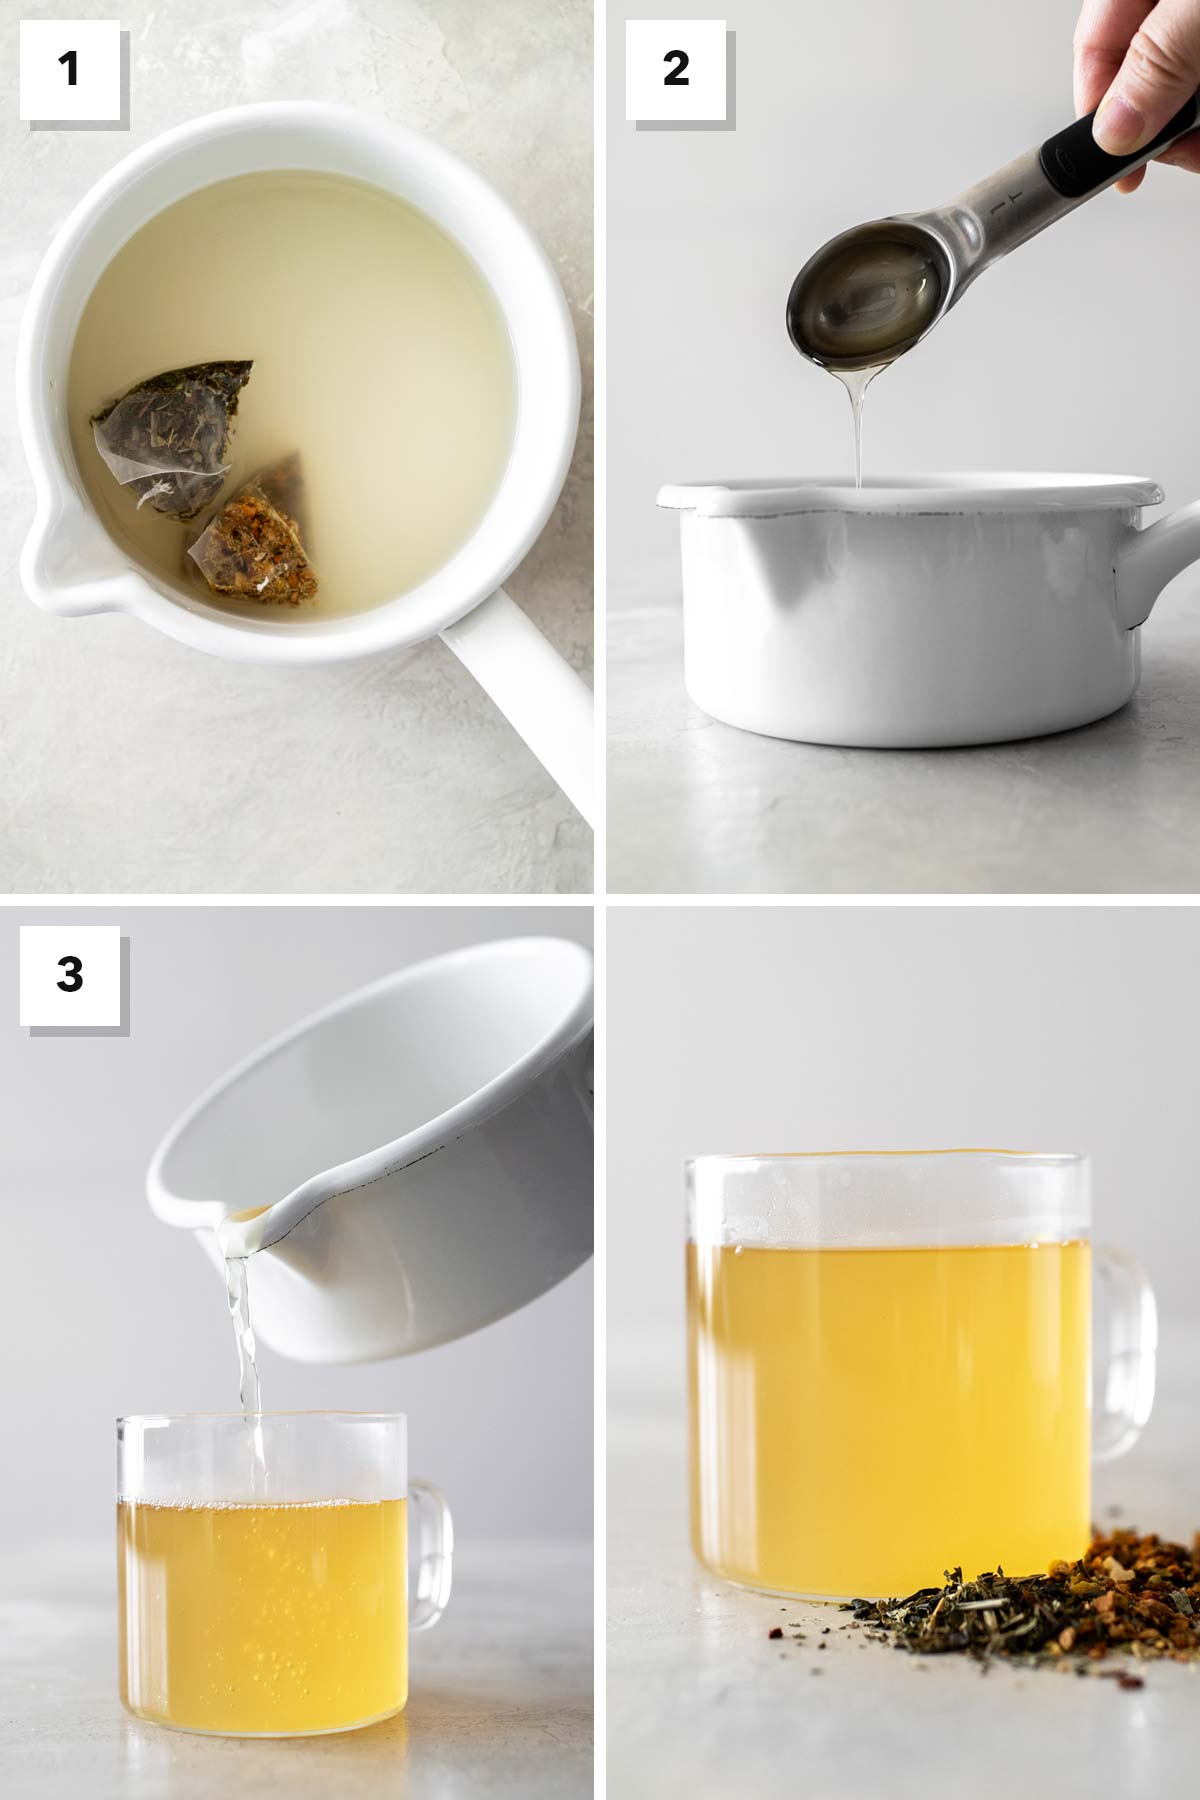 Four photo collage showing steps to make Medicine Ball Tea.